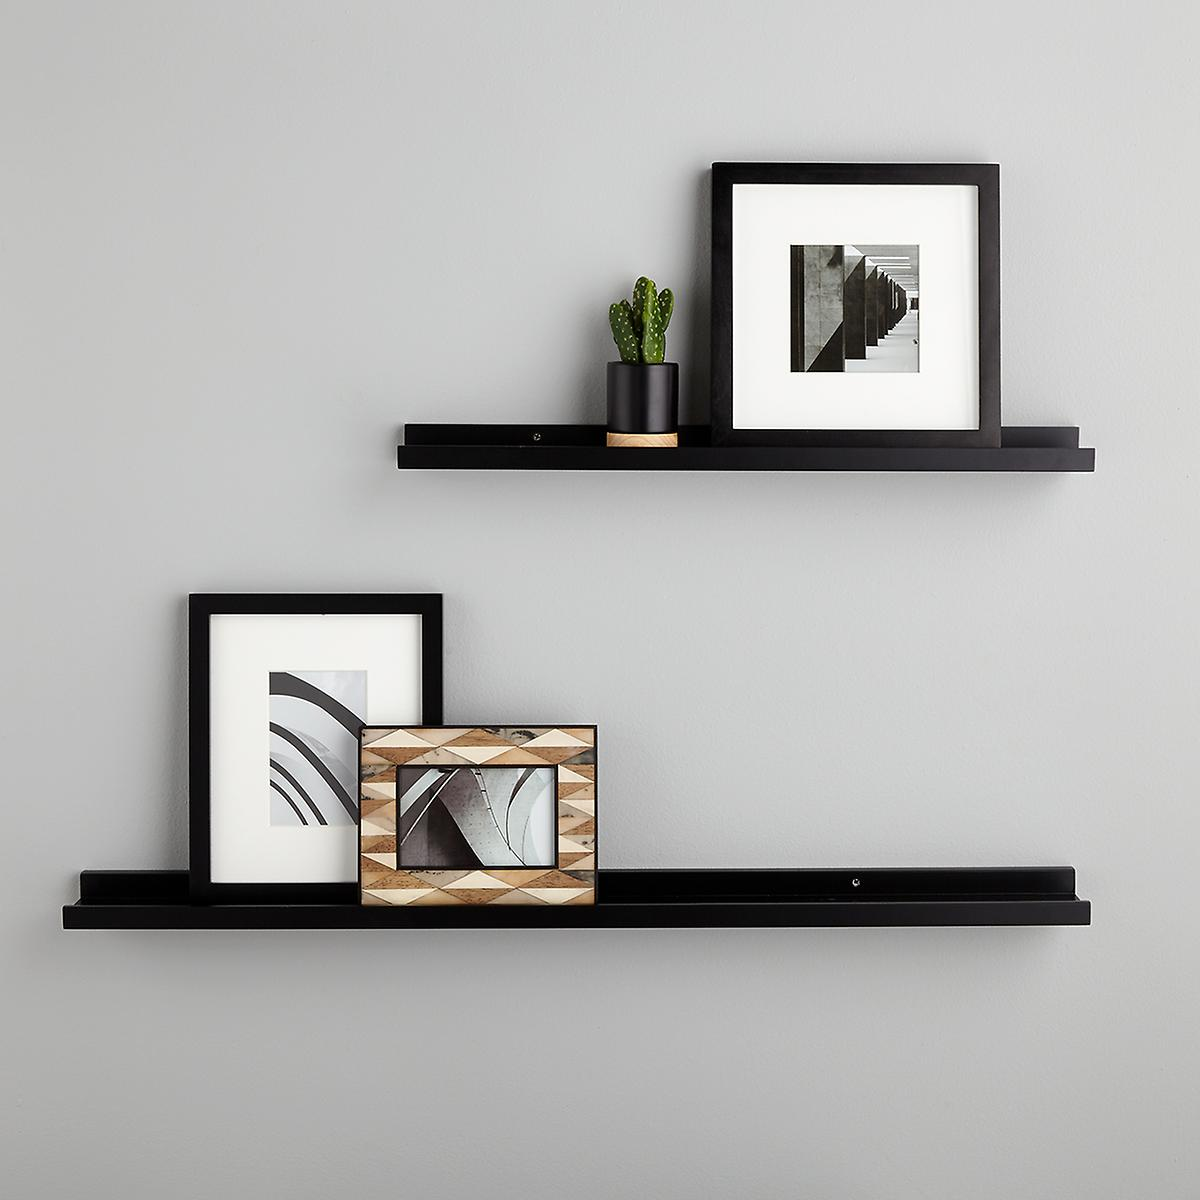 black ledge wall shelves the container shelf floating best subfloor for vinyl flooring hemnes shoe cabinet white mounted computer desk ideas desktop corner unit green glass argos